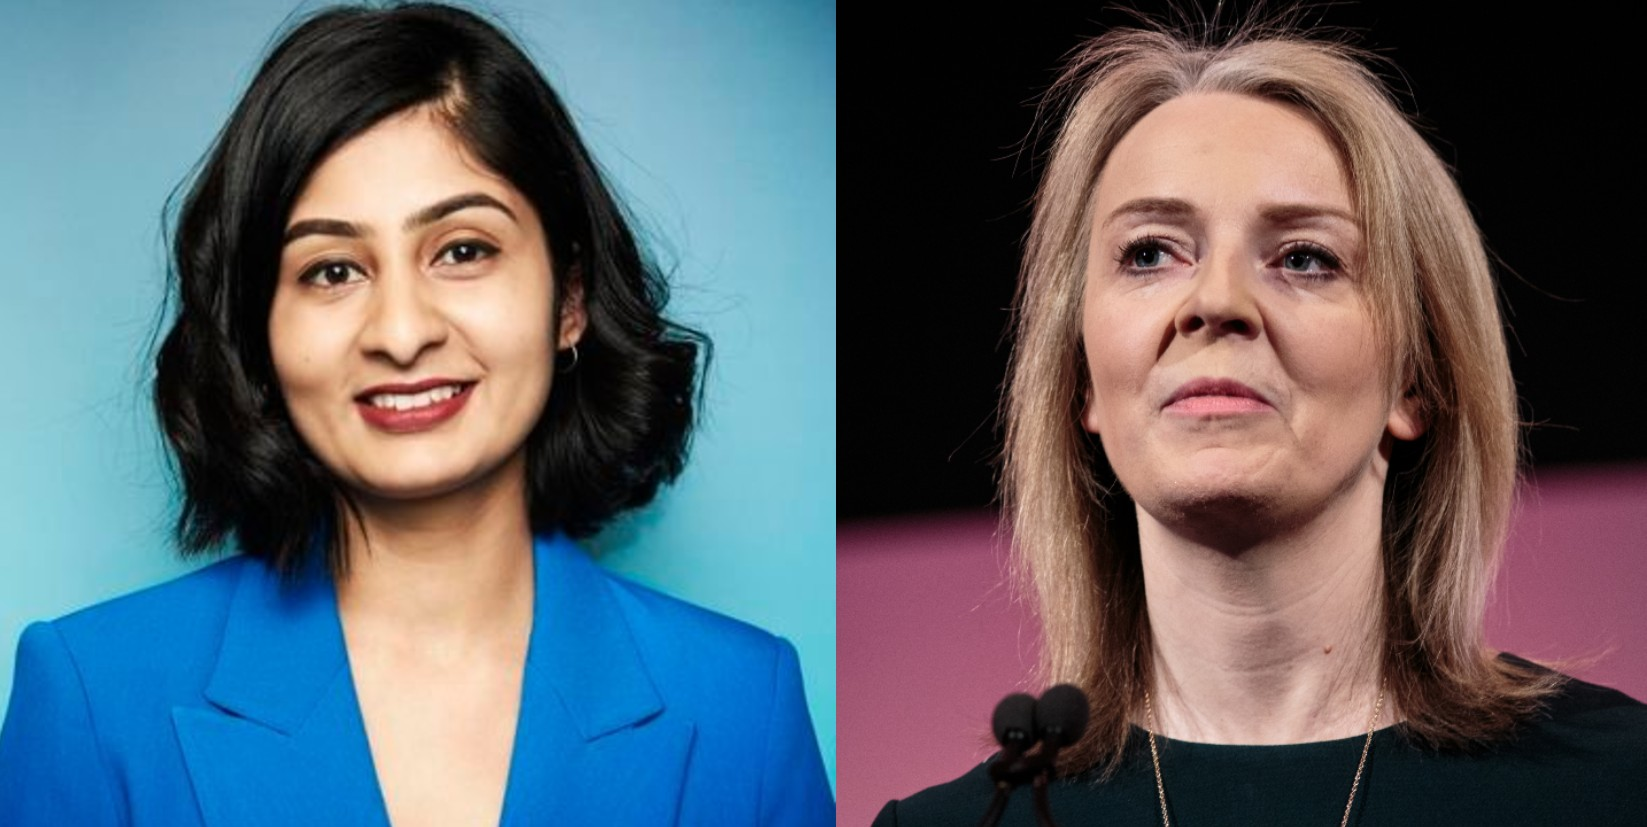 Labour MP Zarah Sultana demands Liz Truss sets out her position on trans rights and healthcare in scathing letter